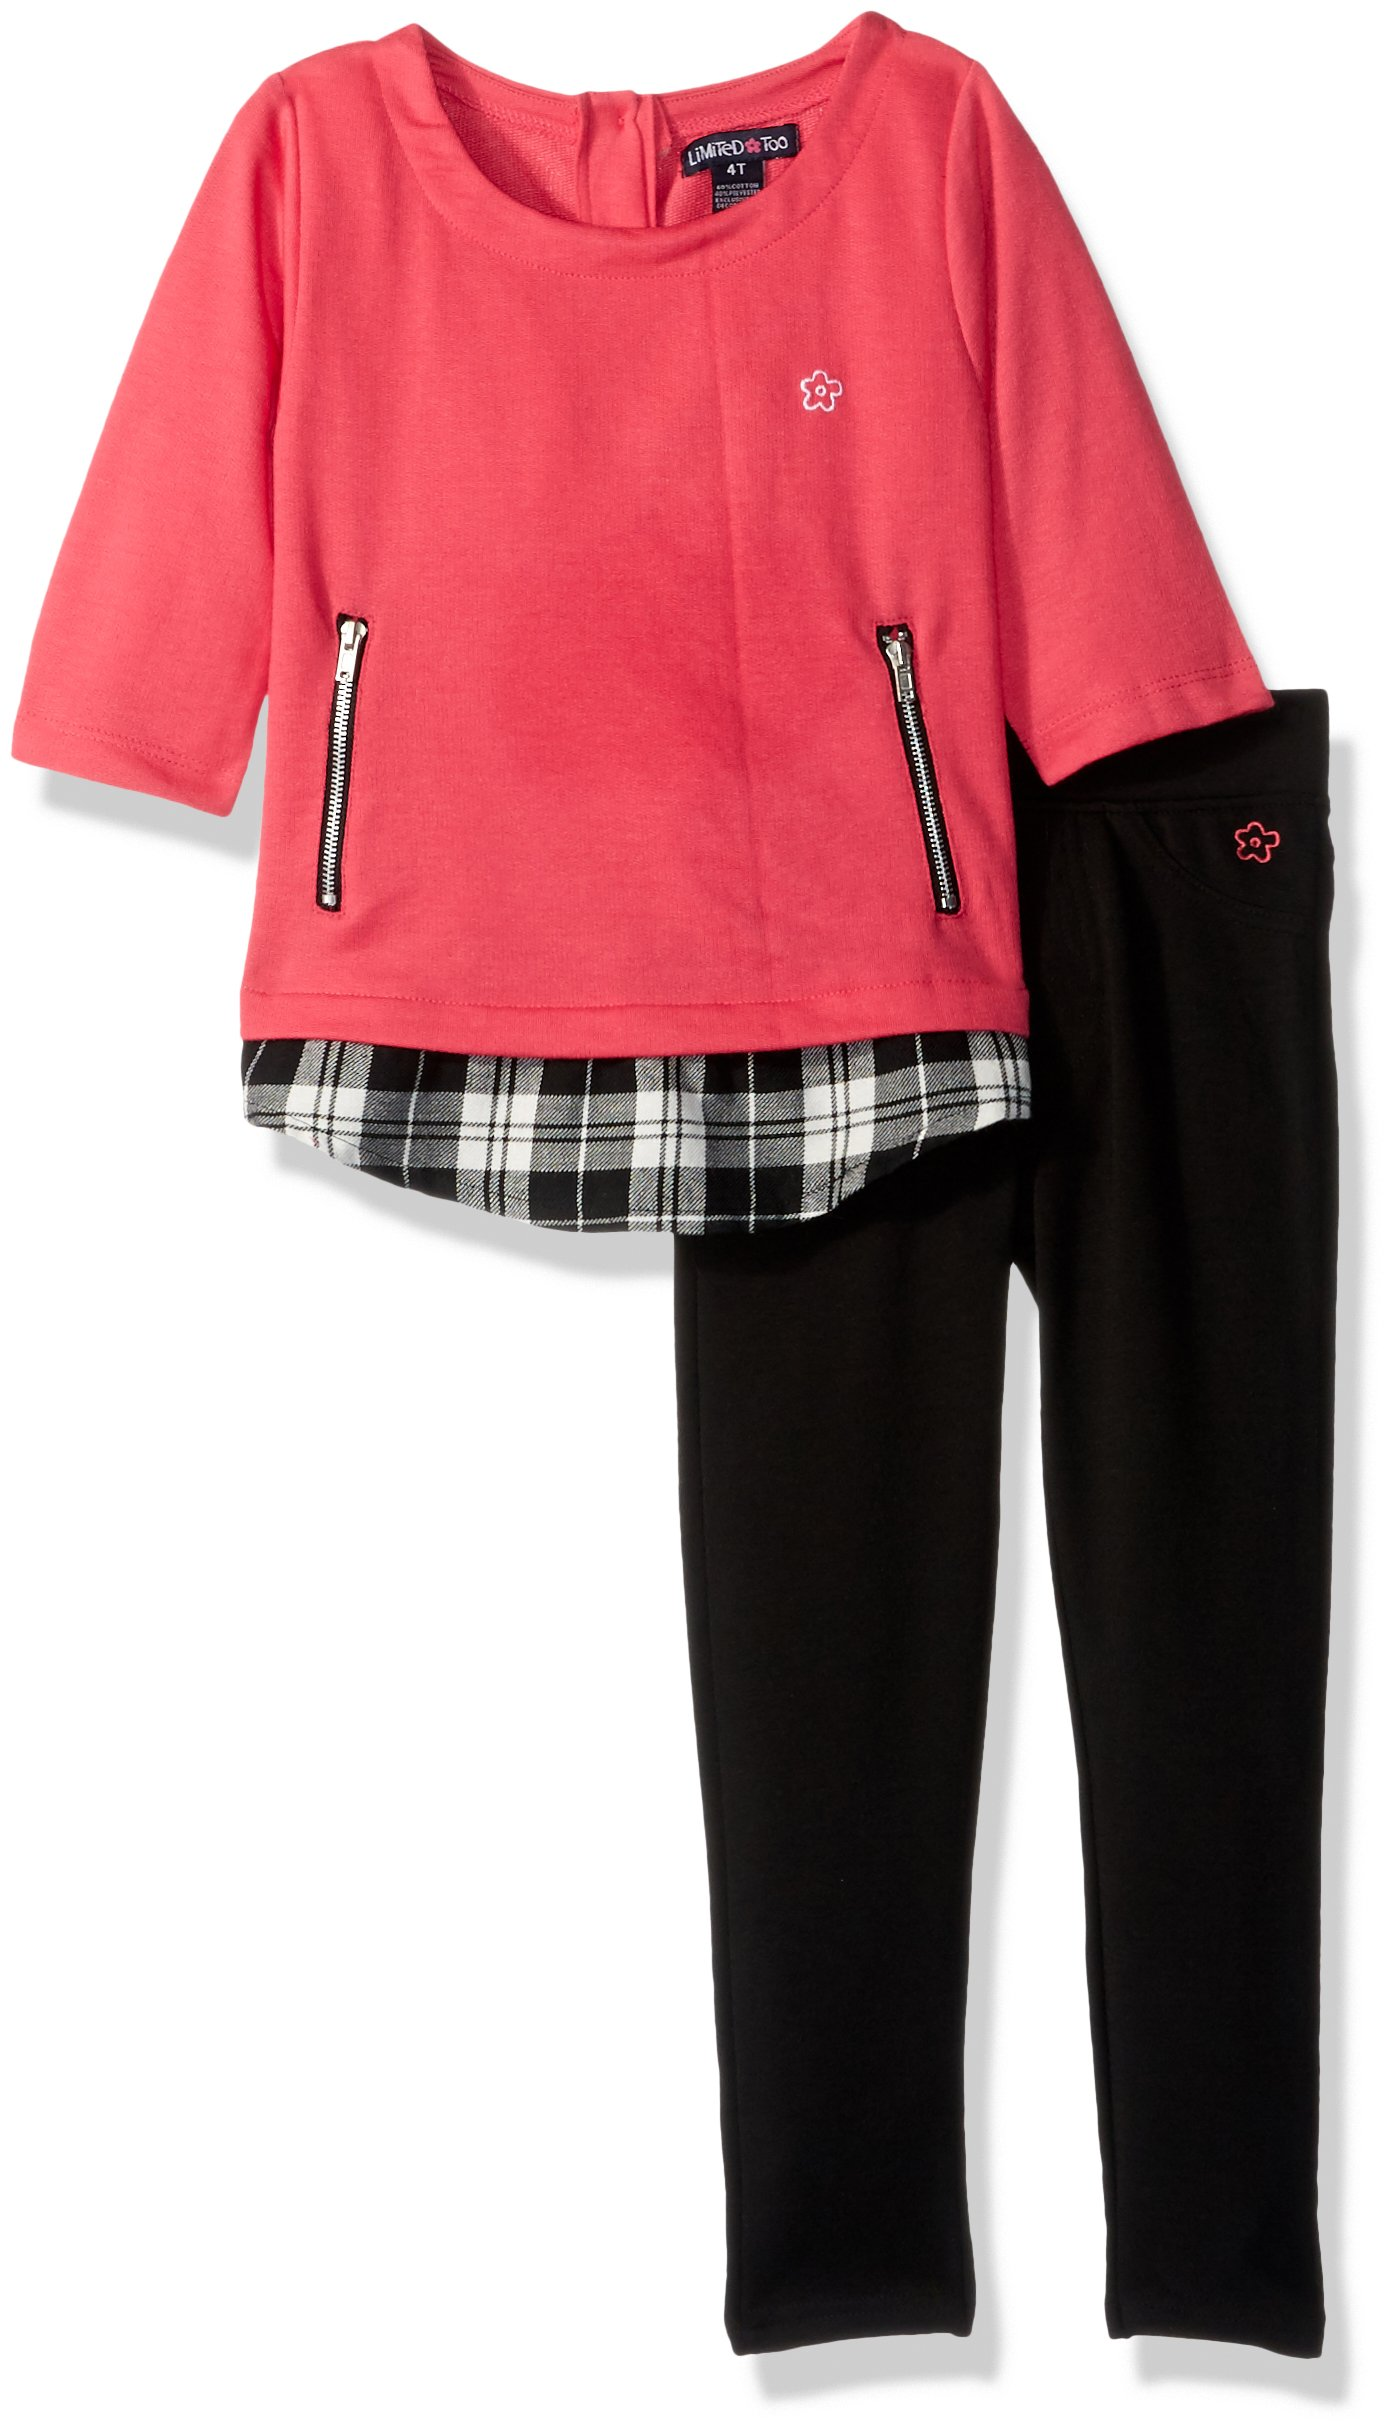 Limited Too Toddler Girls' Fashion Top and Pant Set (More Styles Available), Honeysuckle, 2T